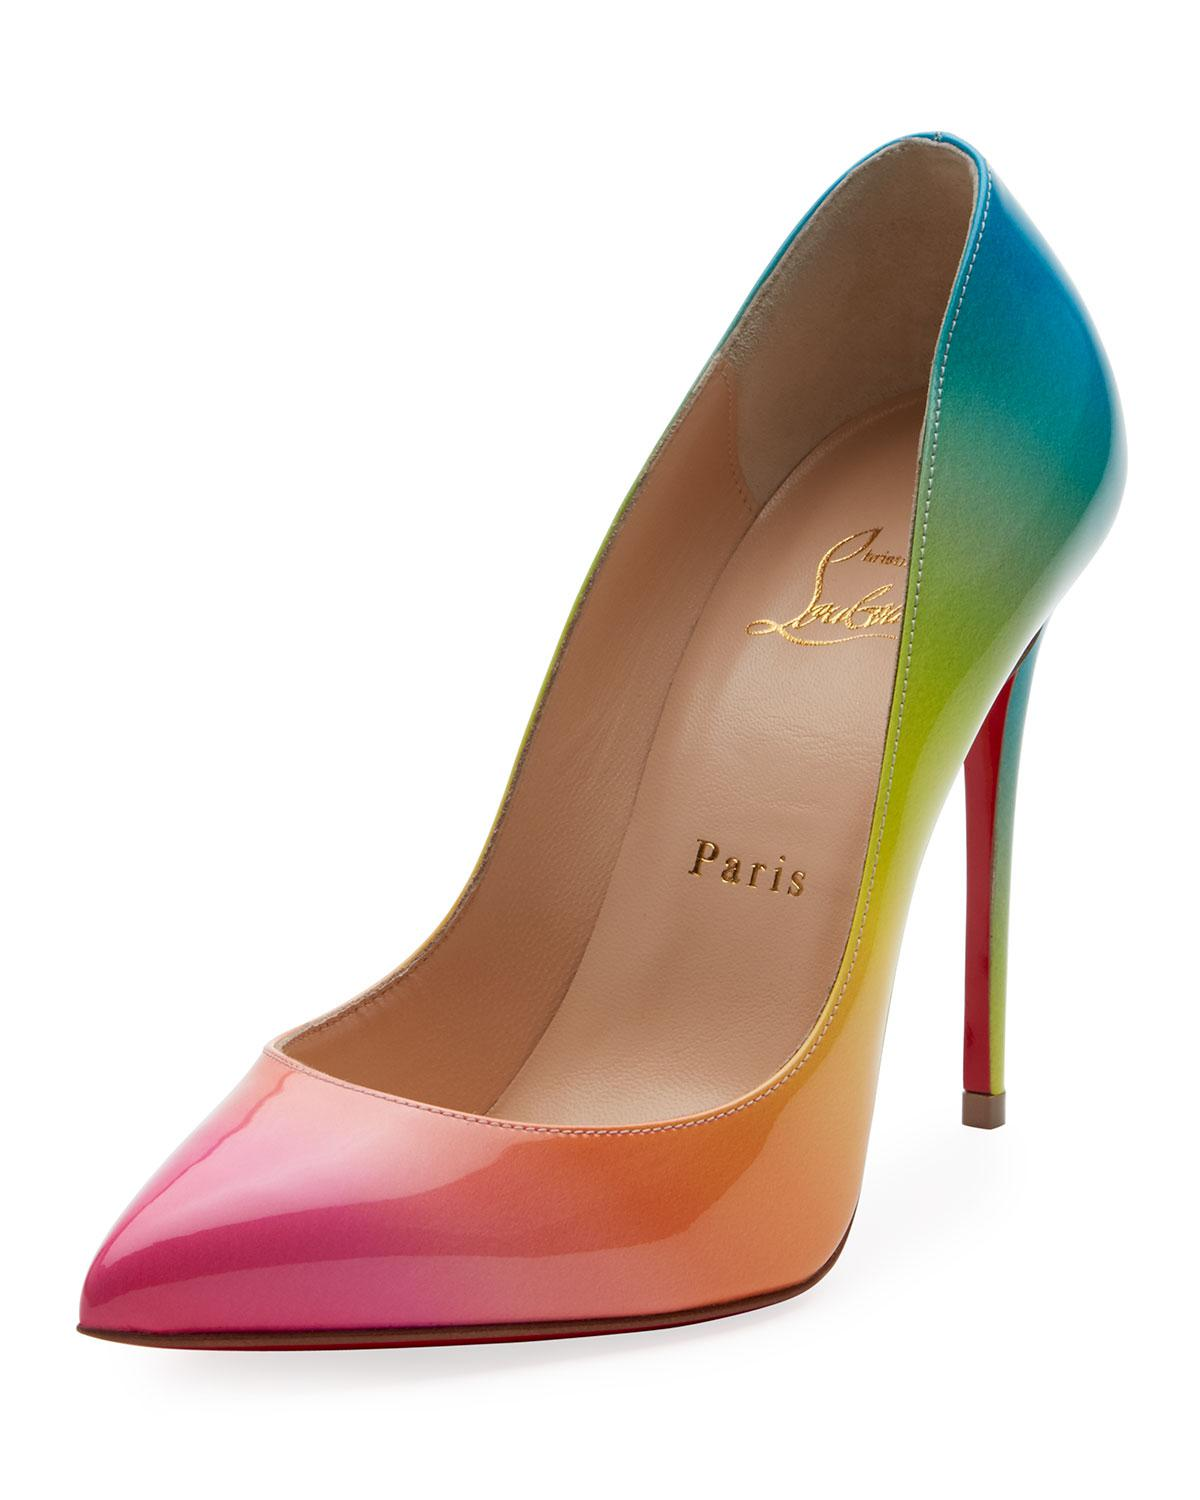 bf391a3b7e09 Lyst - Christian Louboutin Pigalle Follies 100mm Ombre Patent Red ...